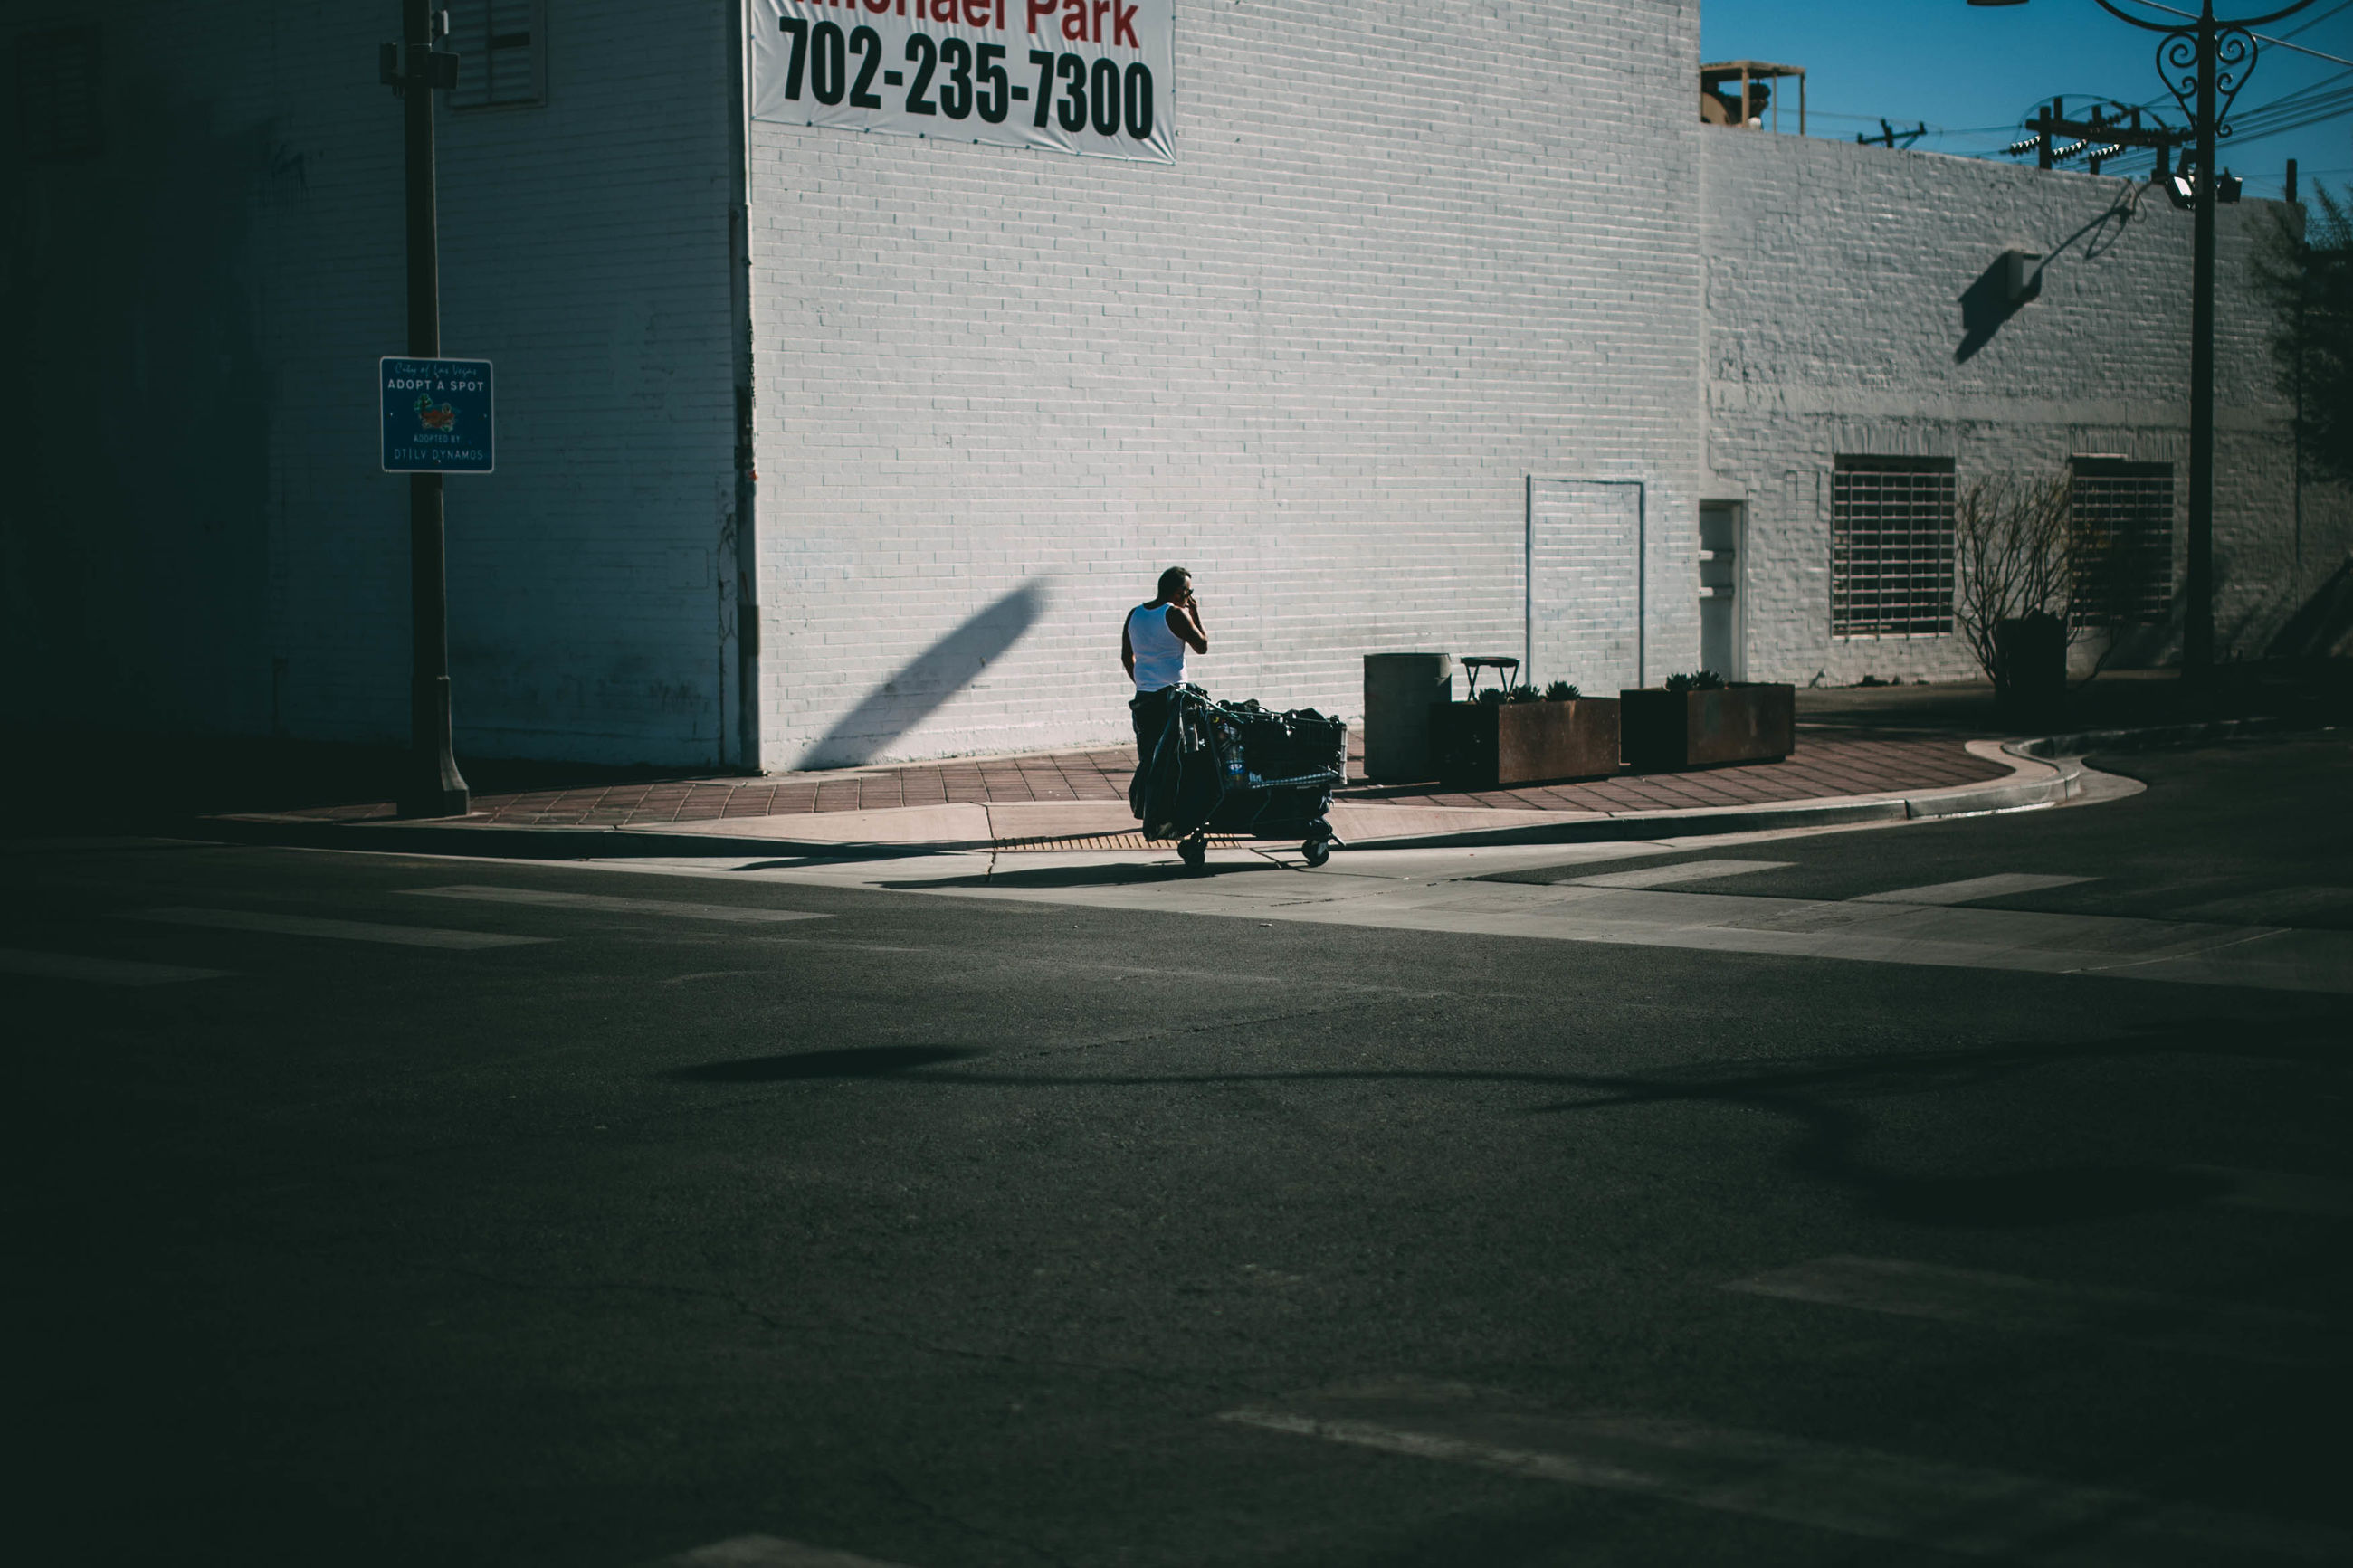 building exterior, built structure, transportation, architecture, scooter, sunlight, street, day, outdoors, men, land vehicle, city, one person, shadow, real people, full length, people